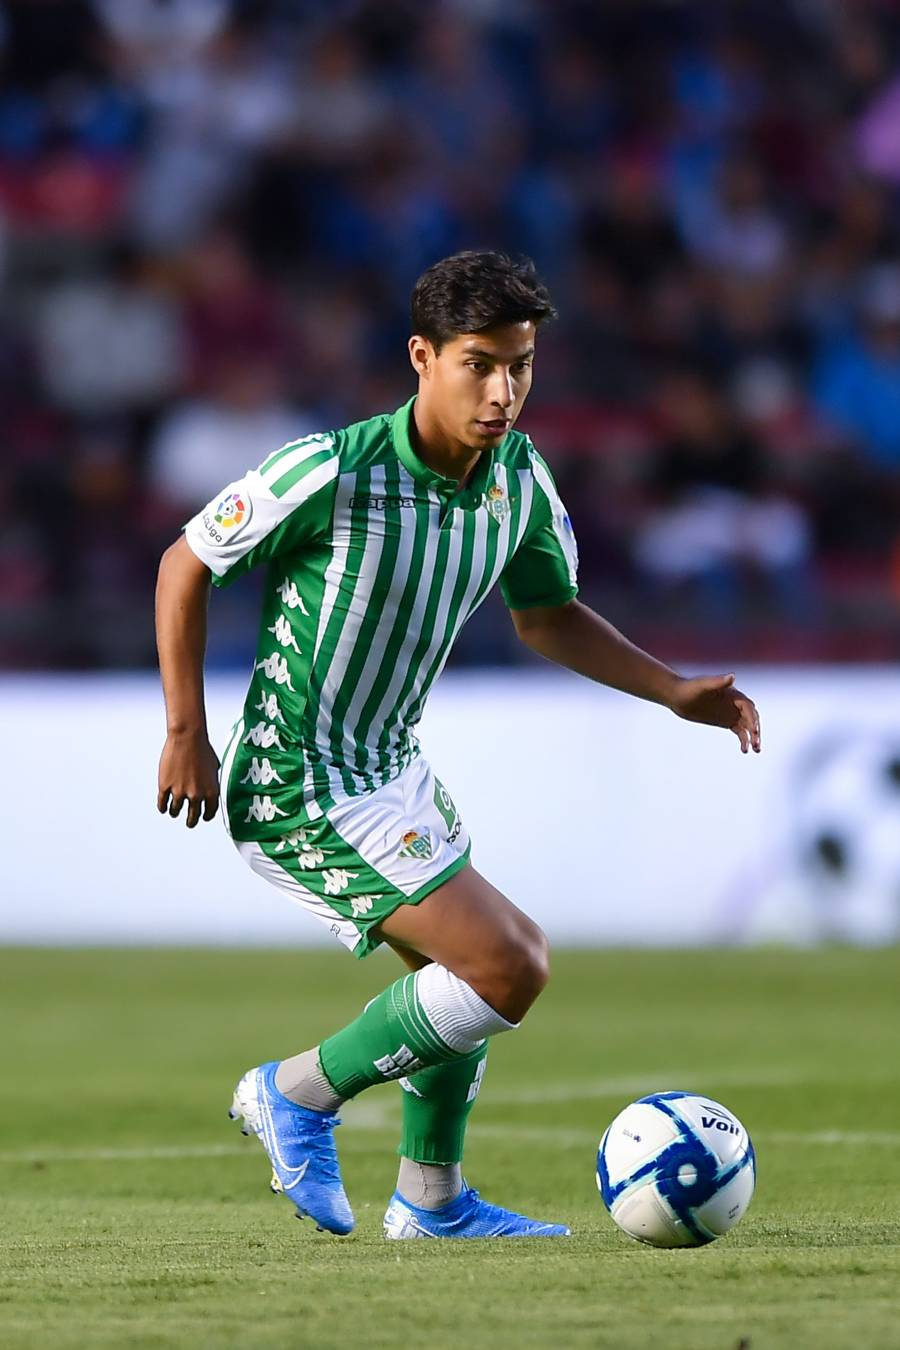 Diego Lainez nominado a Golden Boy 2020